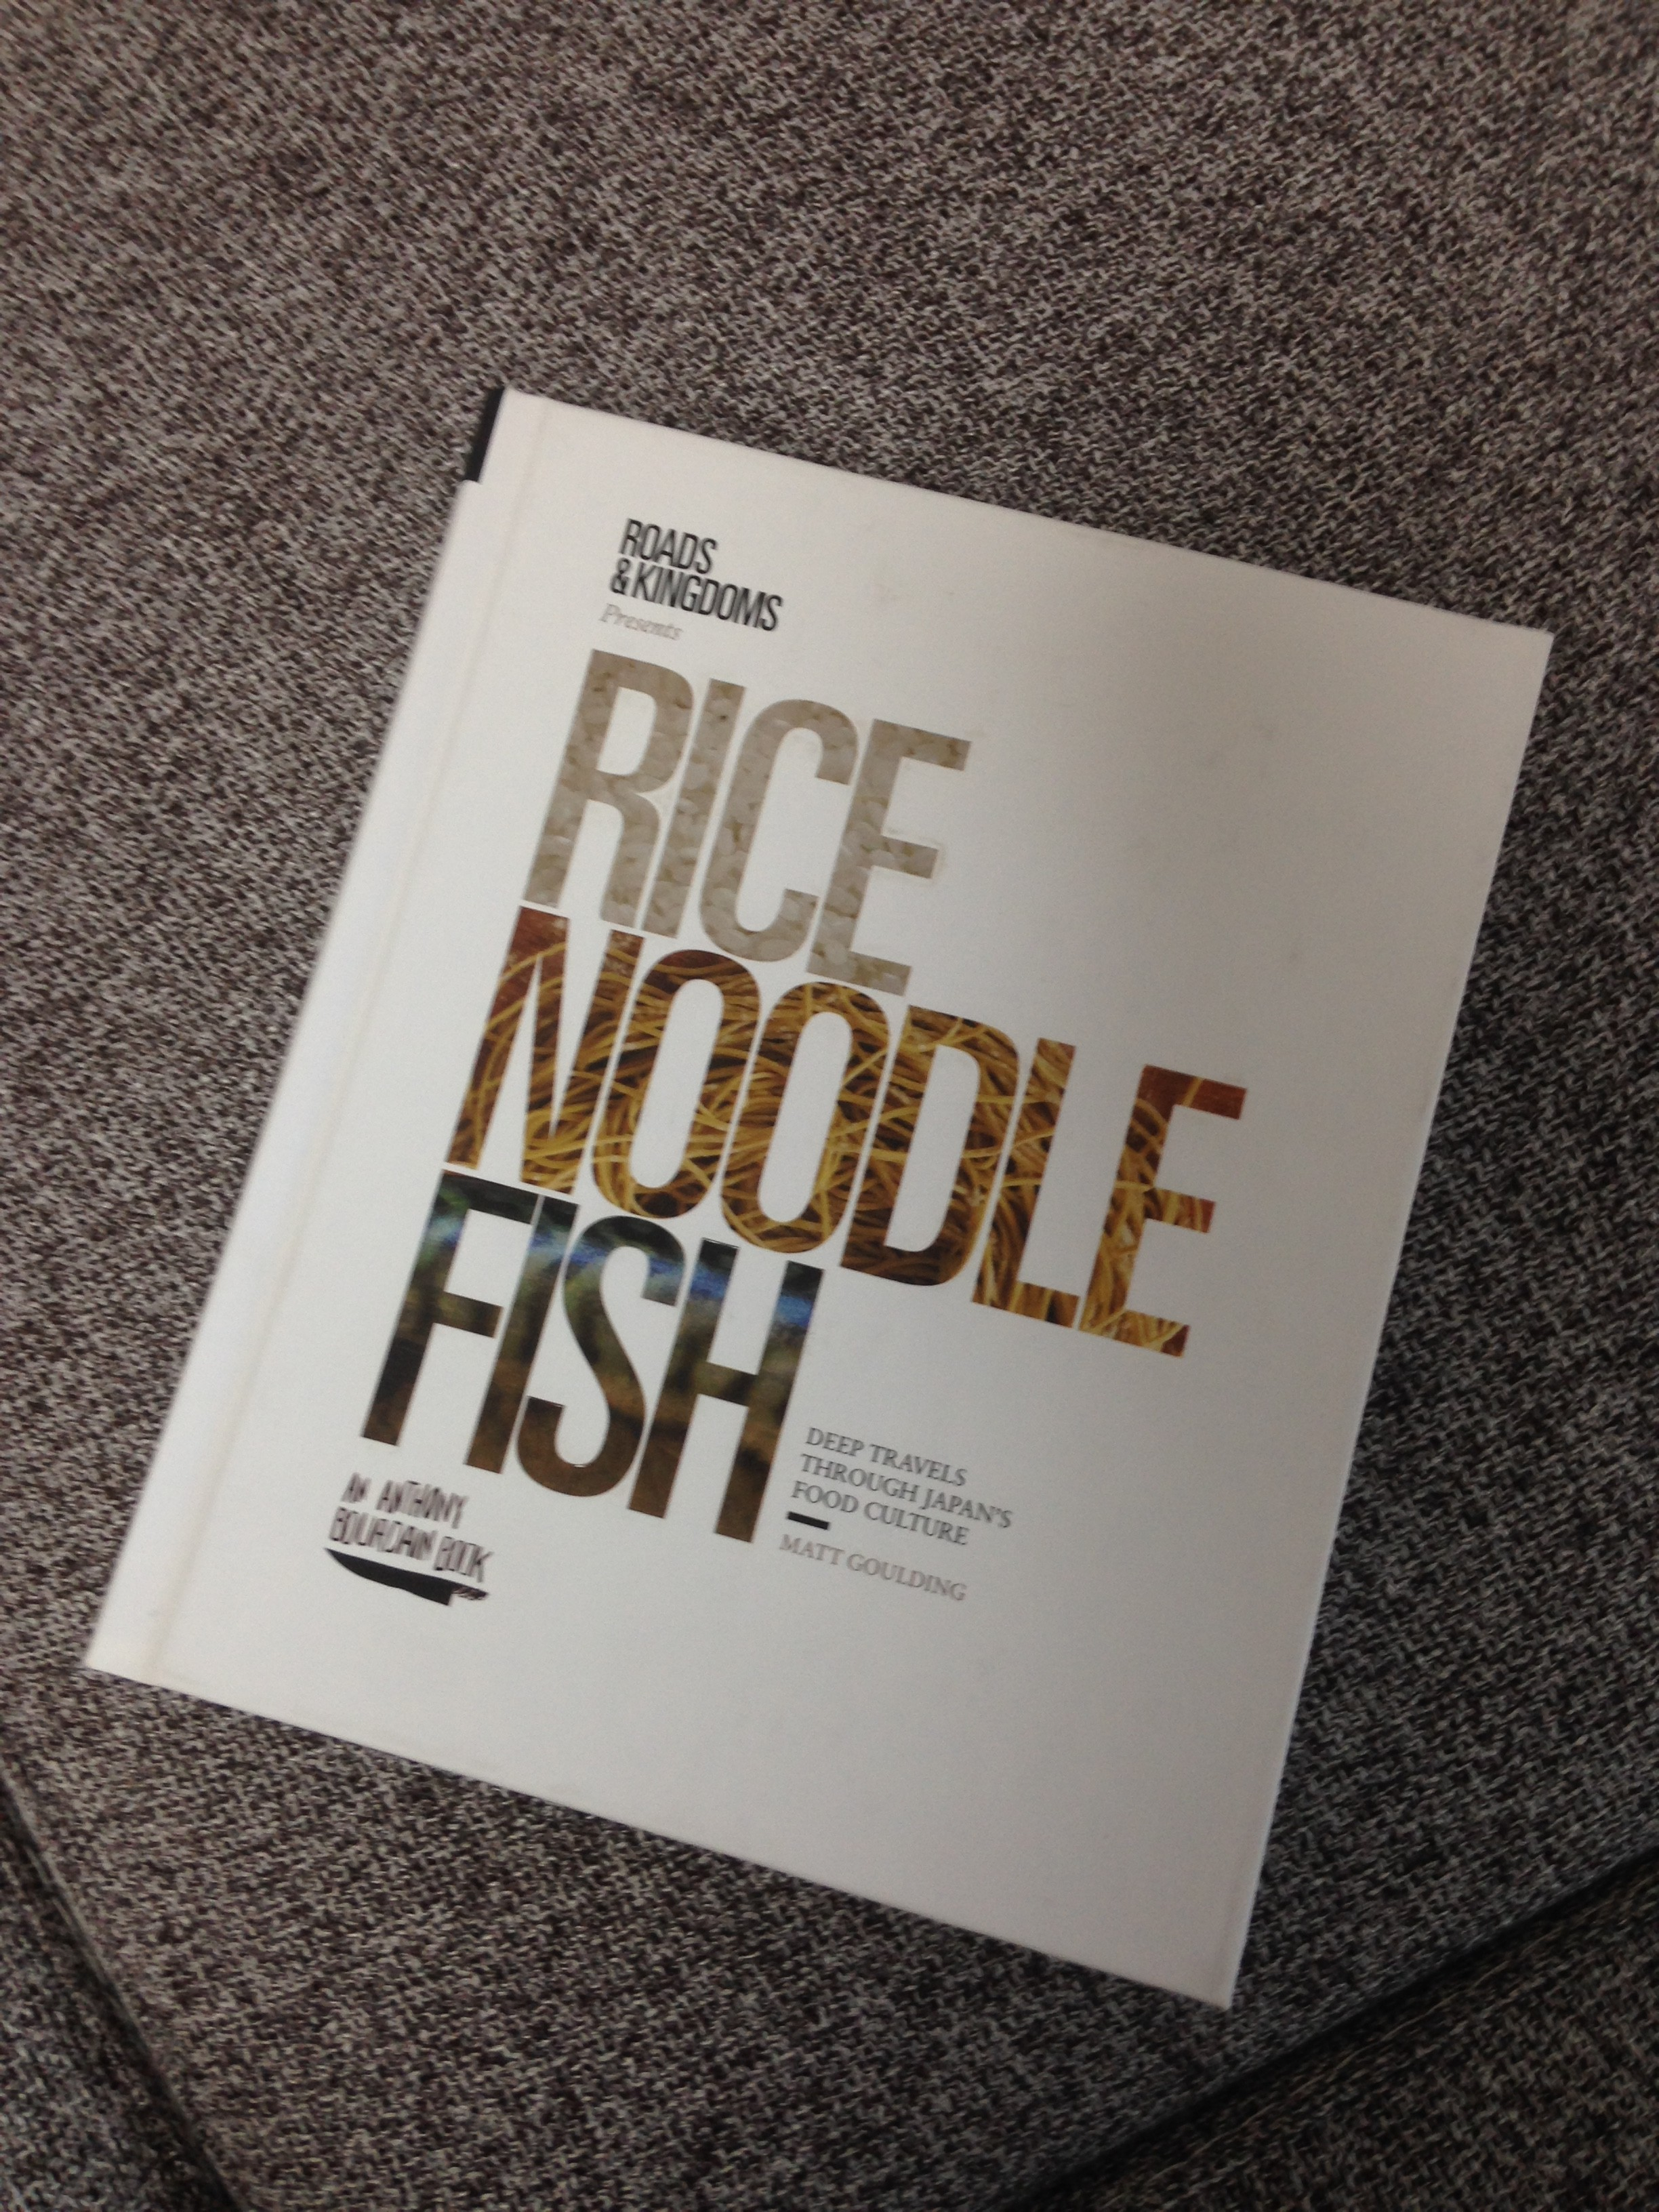 Rice Noodle Fish Book